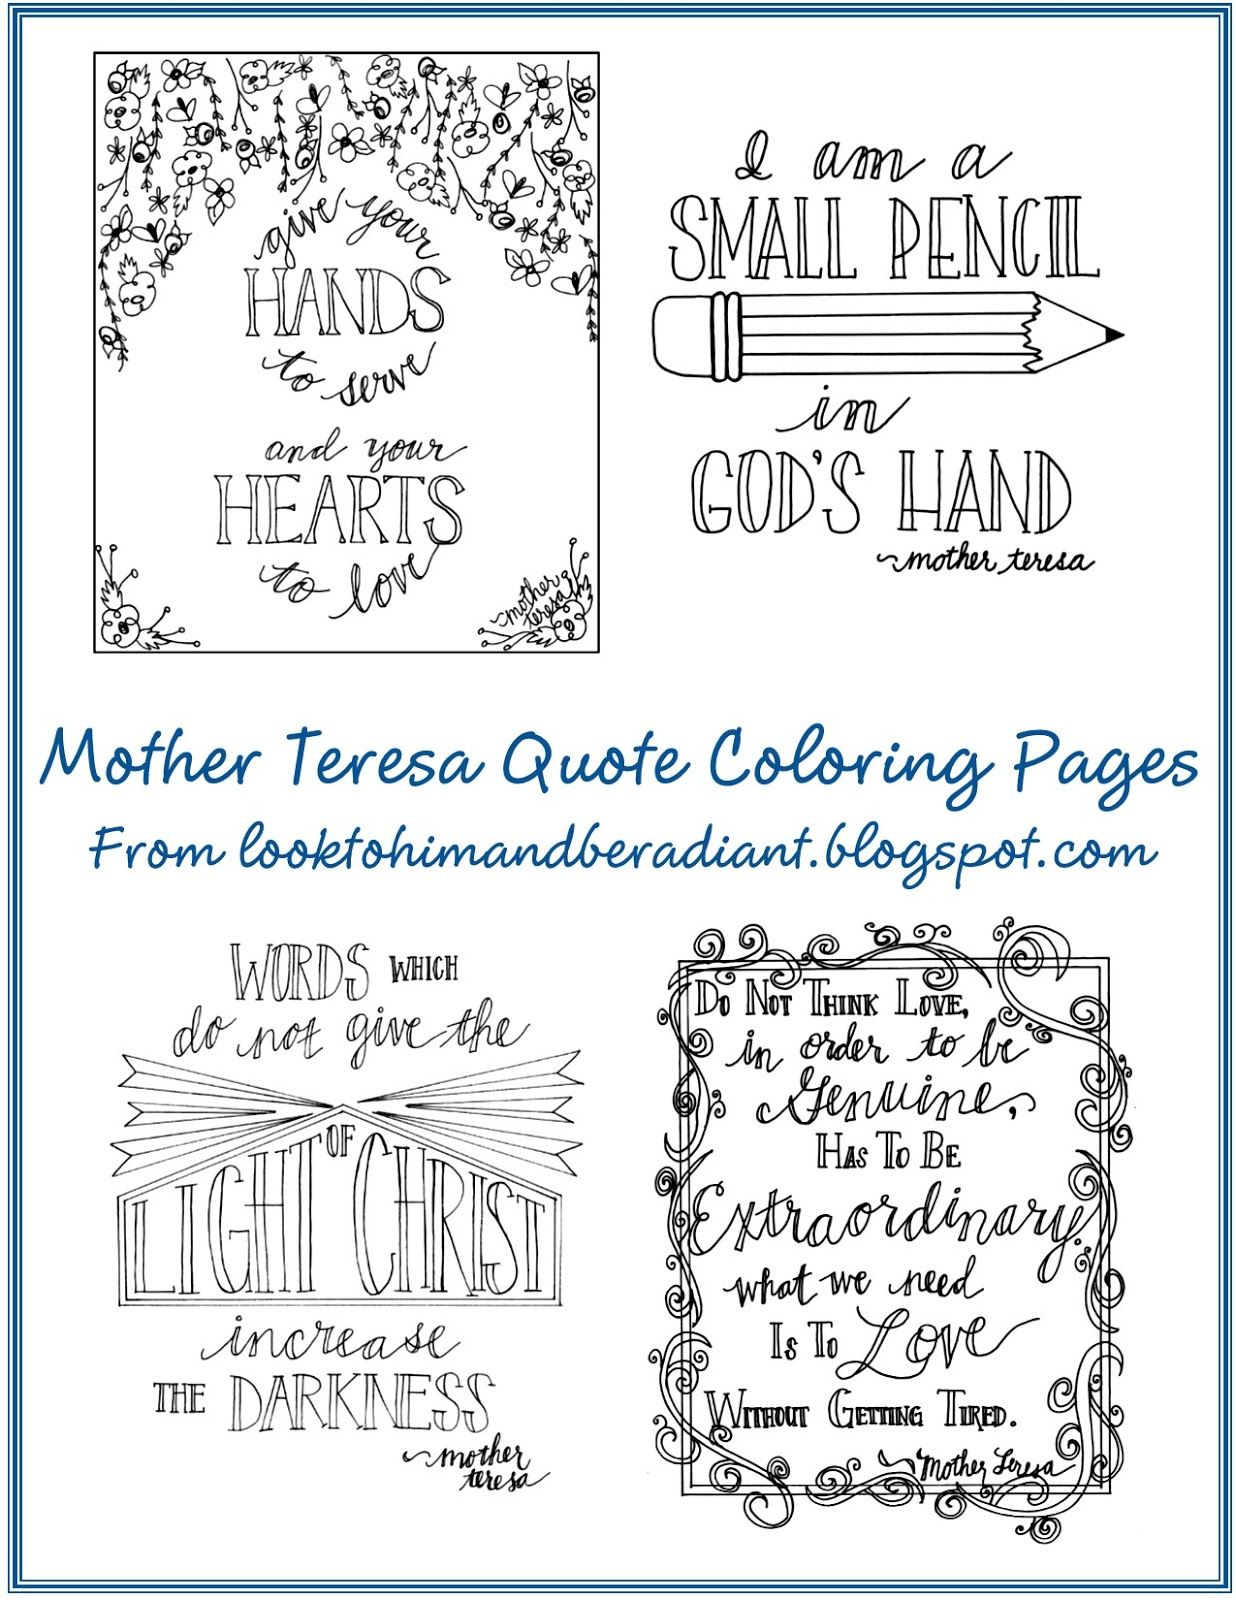 Religious Education Ideas For Catholic Teachers Homeschoolers And Catechists Crafts Lessons Printables On Sacraments Scripture Prayer